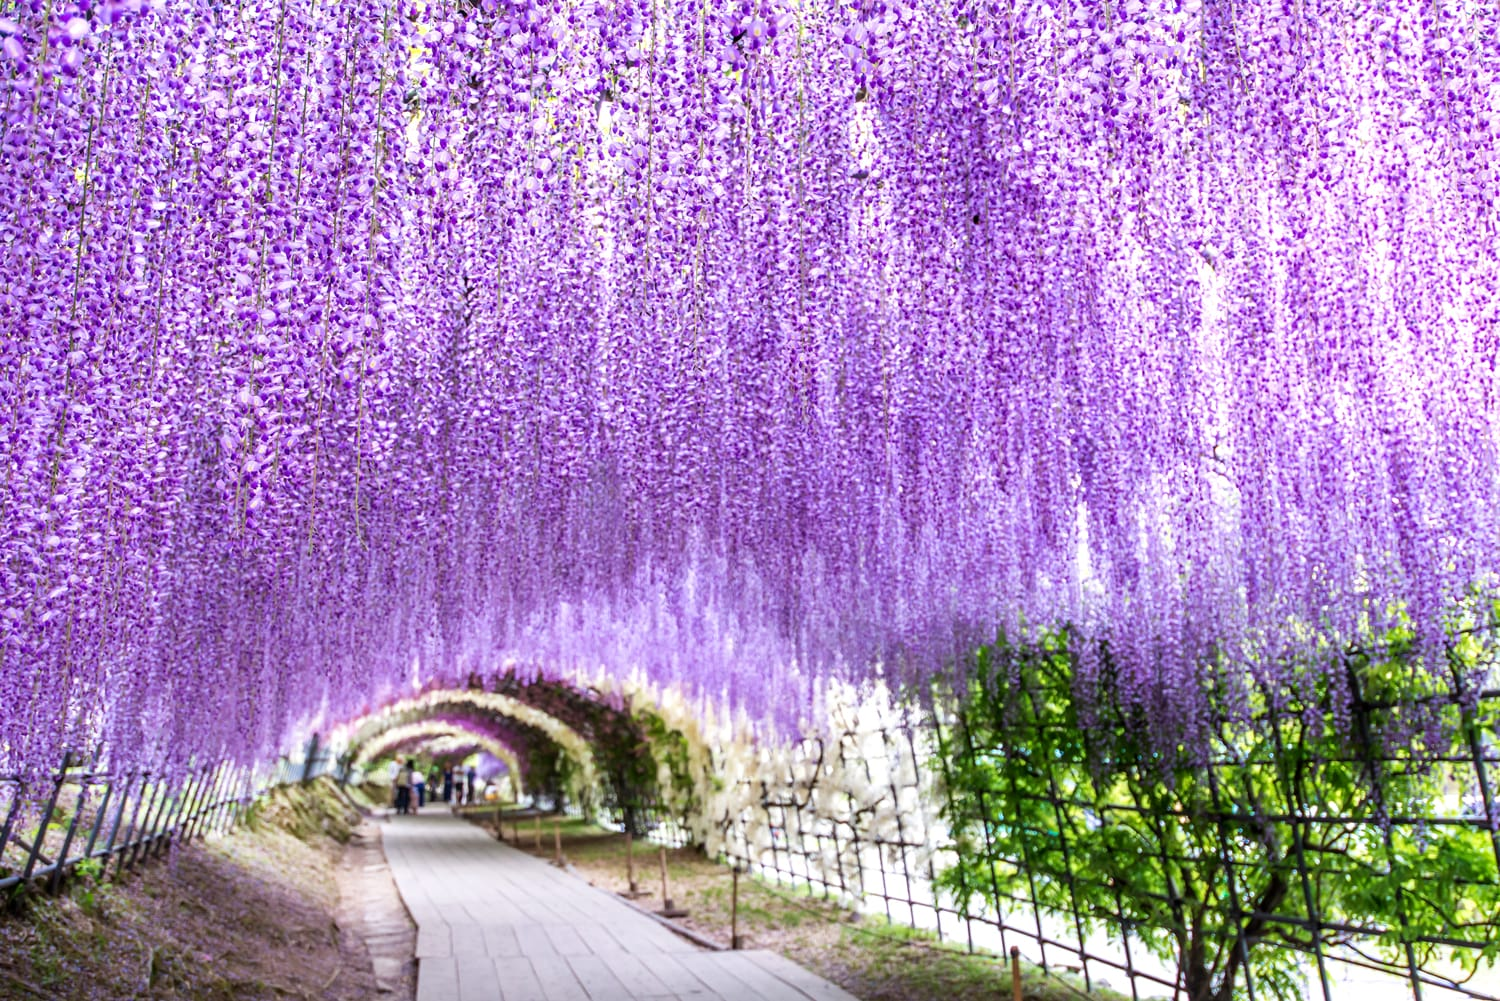 Wisteria Tunnel at Kawachi Fuji Garden, Japan